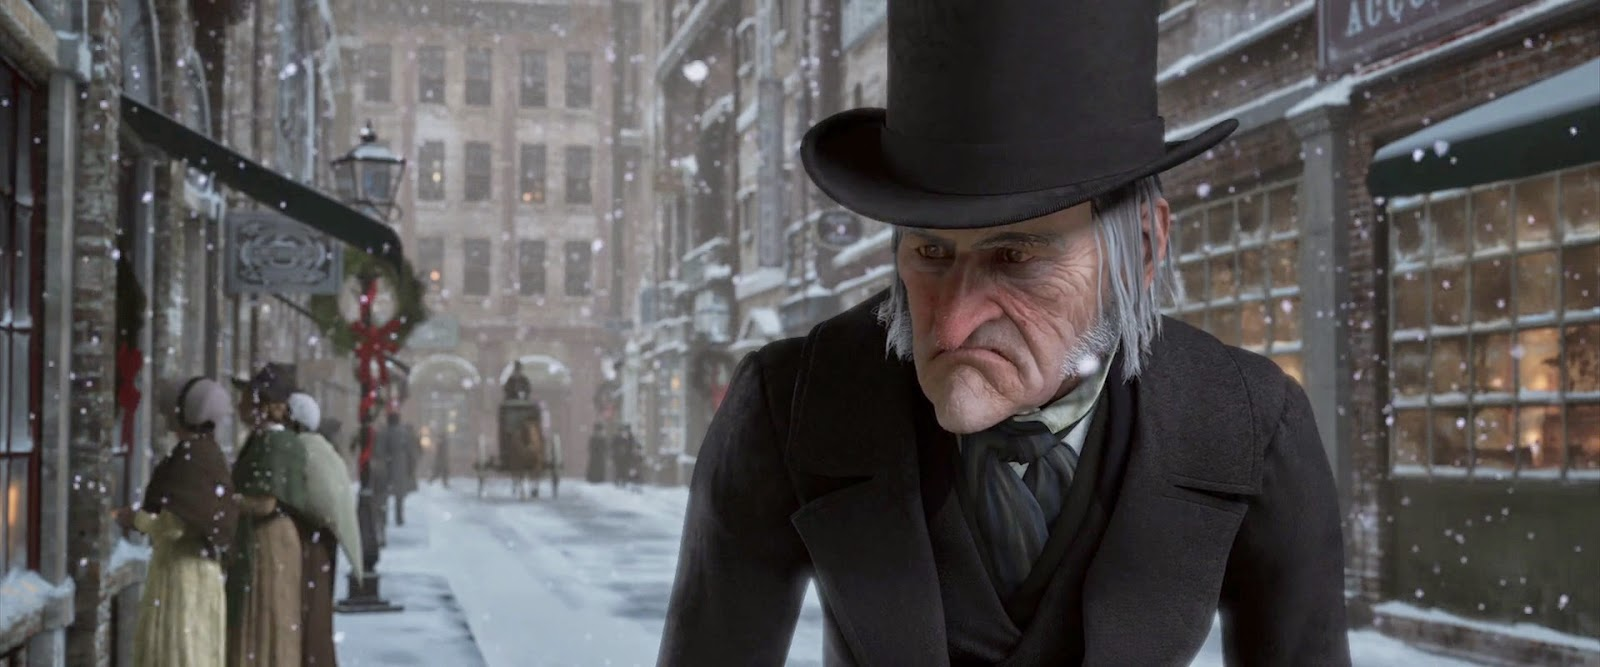 ScreenLife: A Christmas Carol version 245: The one with creepy Jim Carrey